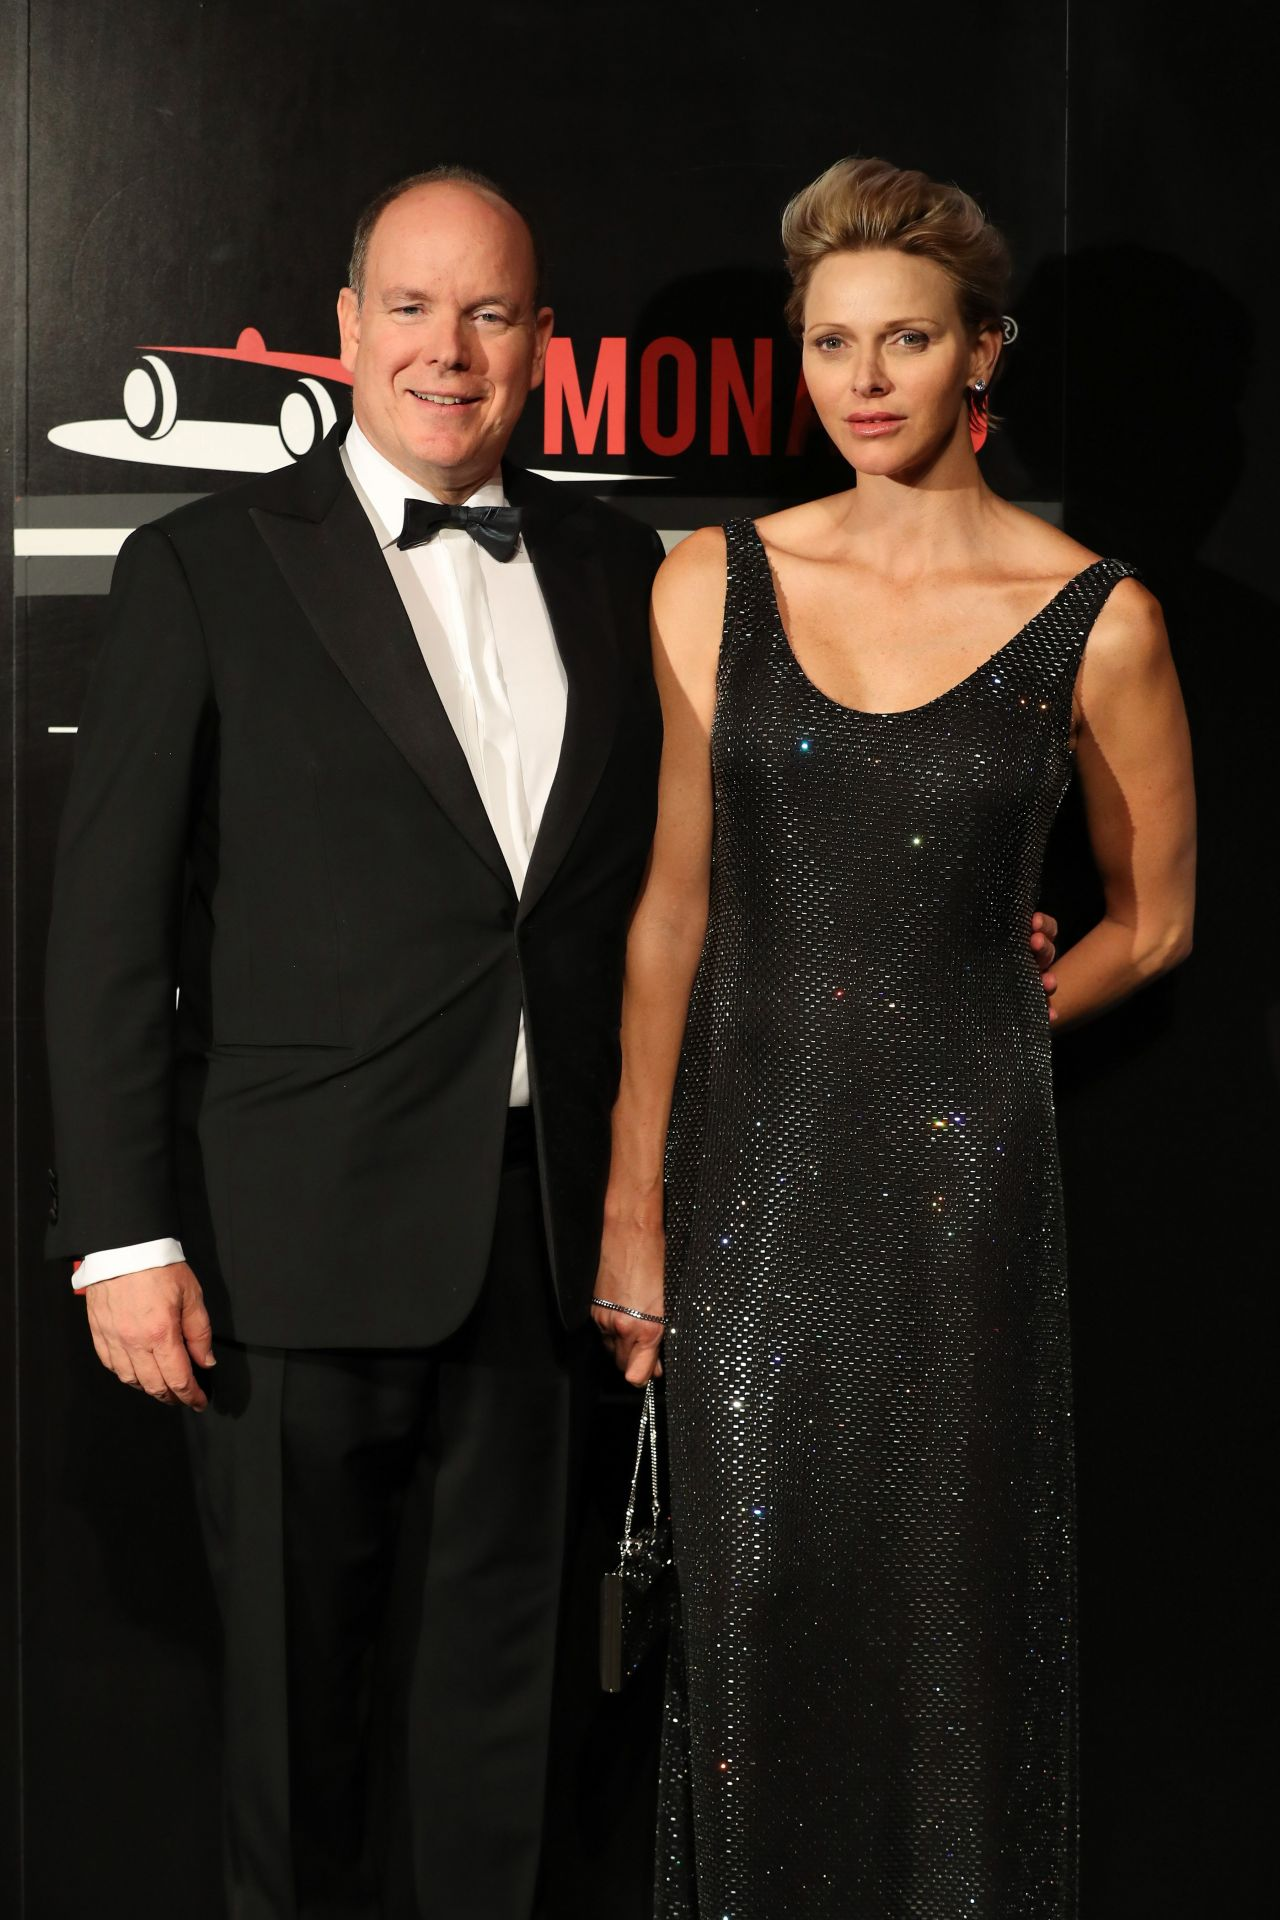 princess charlene of monaco acm dinner gala f1 grand prix of monaco 05 27 2018. Black Bedroom Furniture Sets. Home Design Ideas